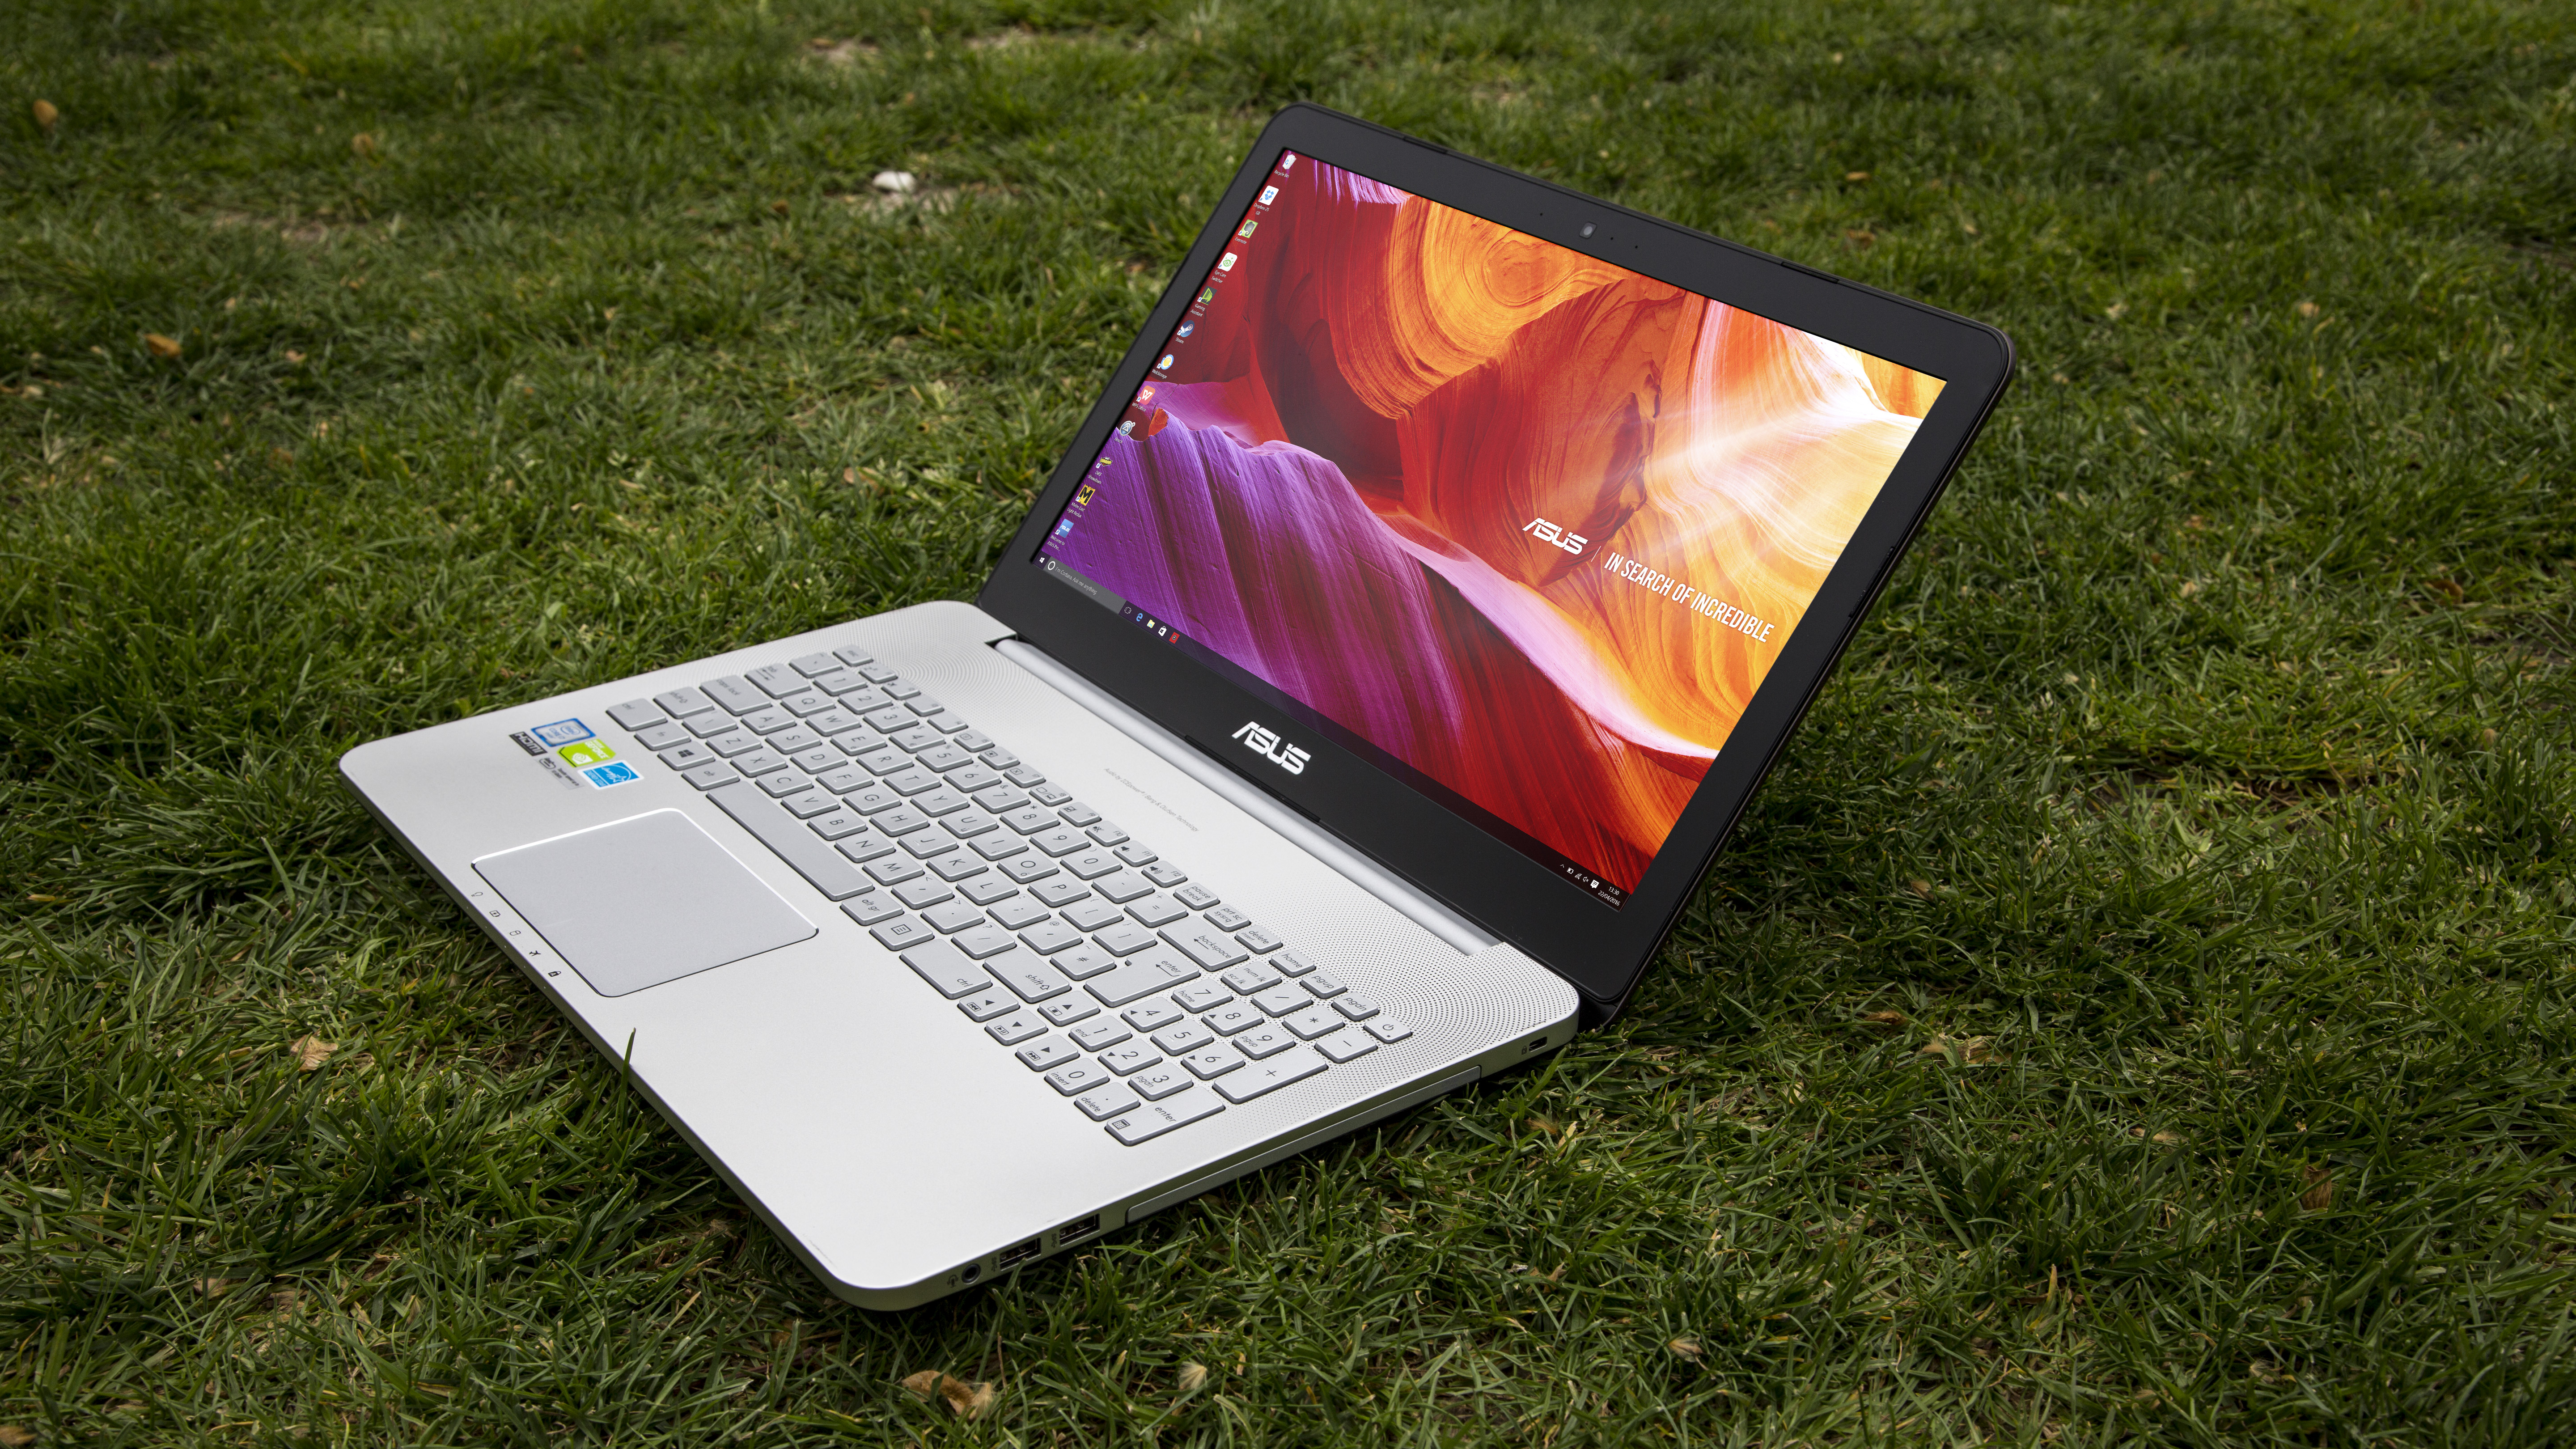 Looking for a new laptop for the best price and quality. Is Asus a good brand?